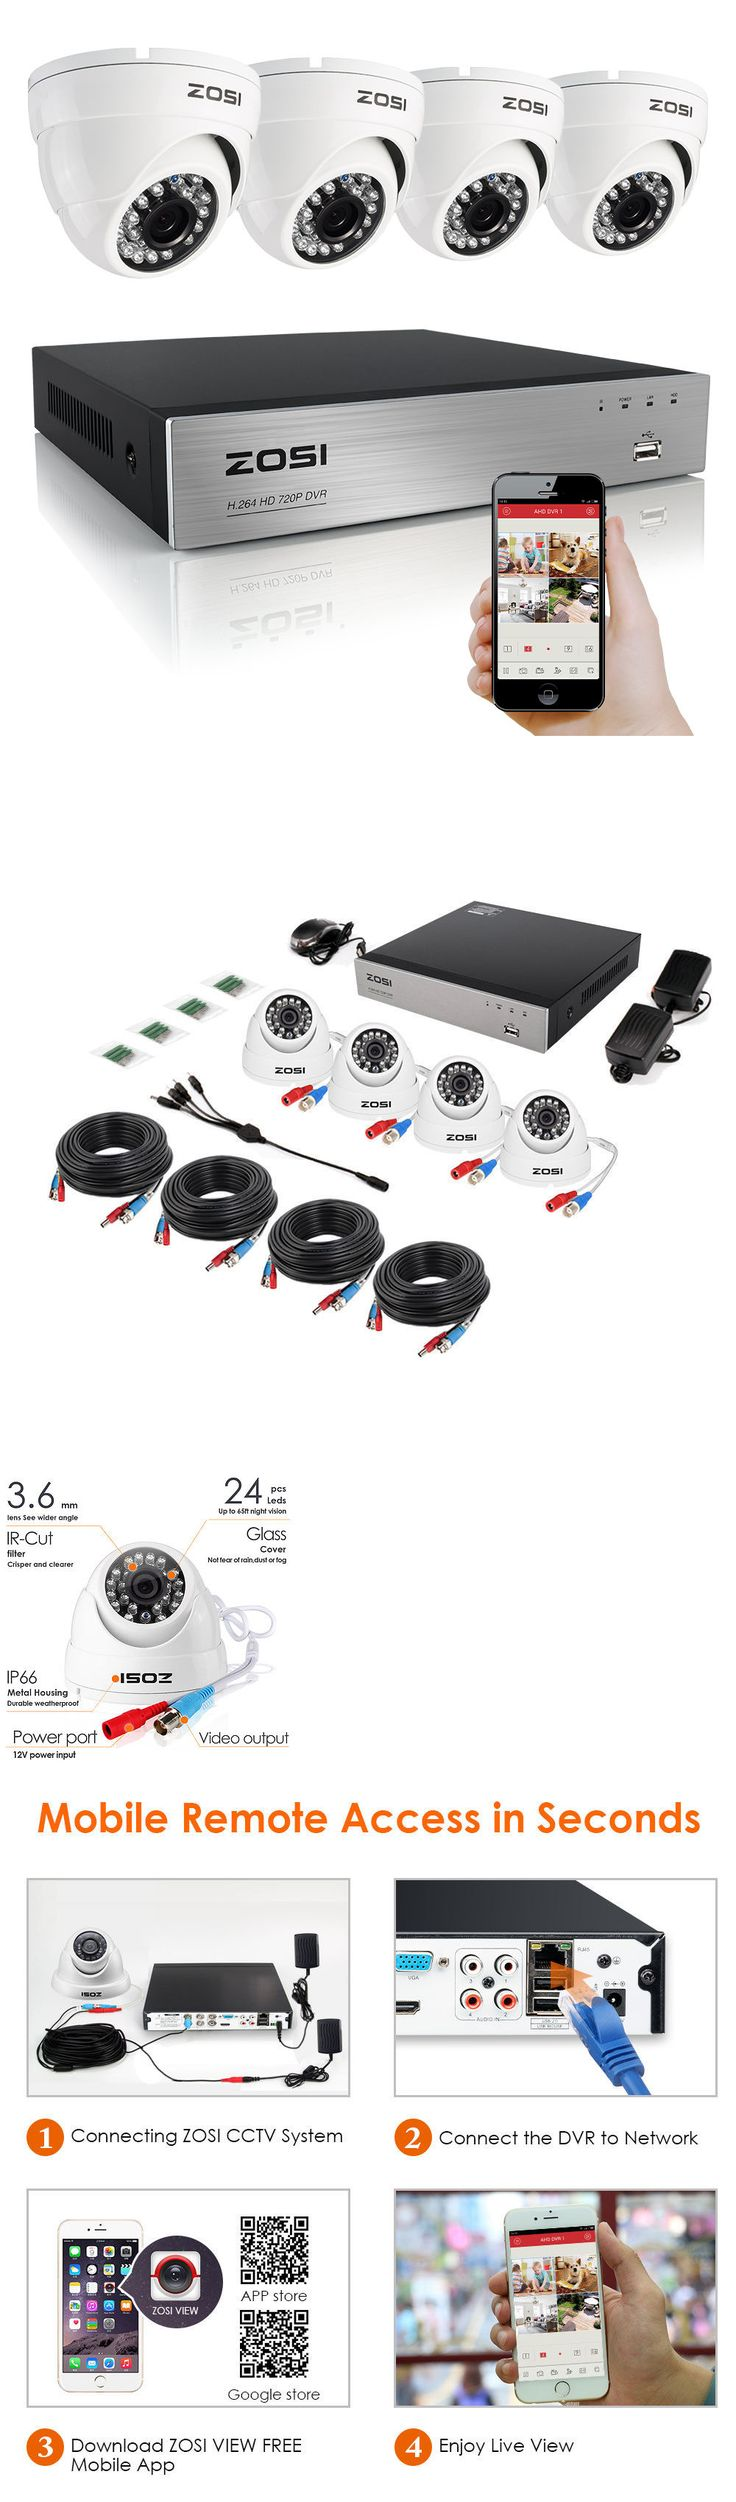 Security Cameras: Zosi Hd 720P 4Ch Hdmi Dvr 1500Tvl Night Vision Dome Home Security Camera System -> BUY IT NOW ONLY: $79.99 on eBay!